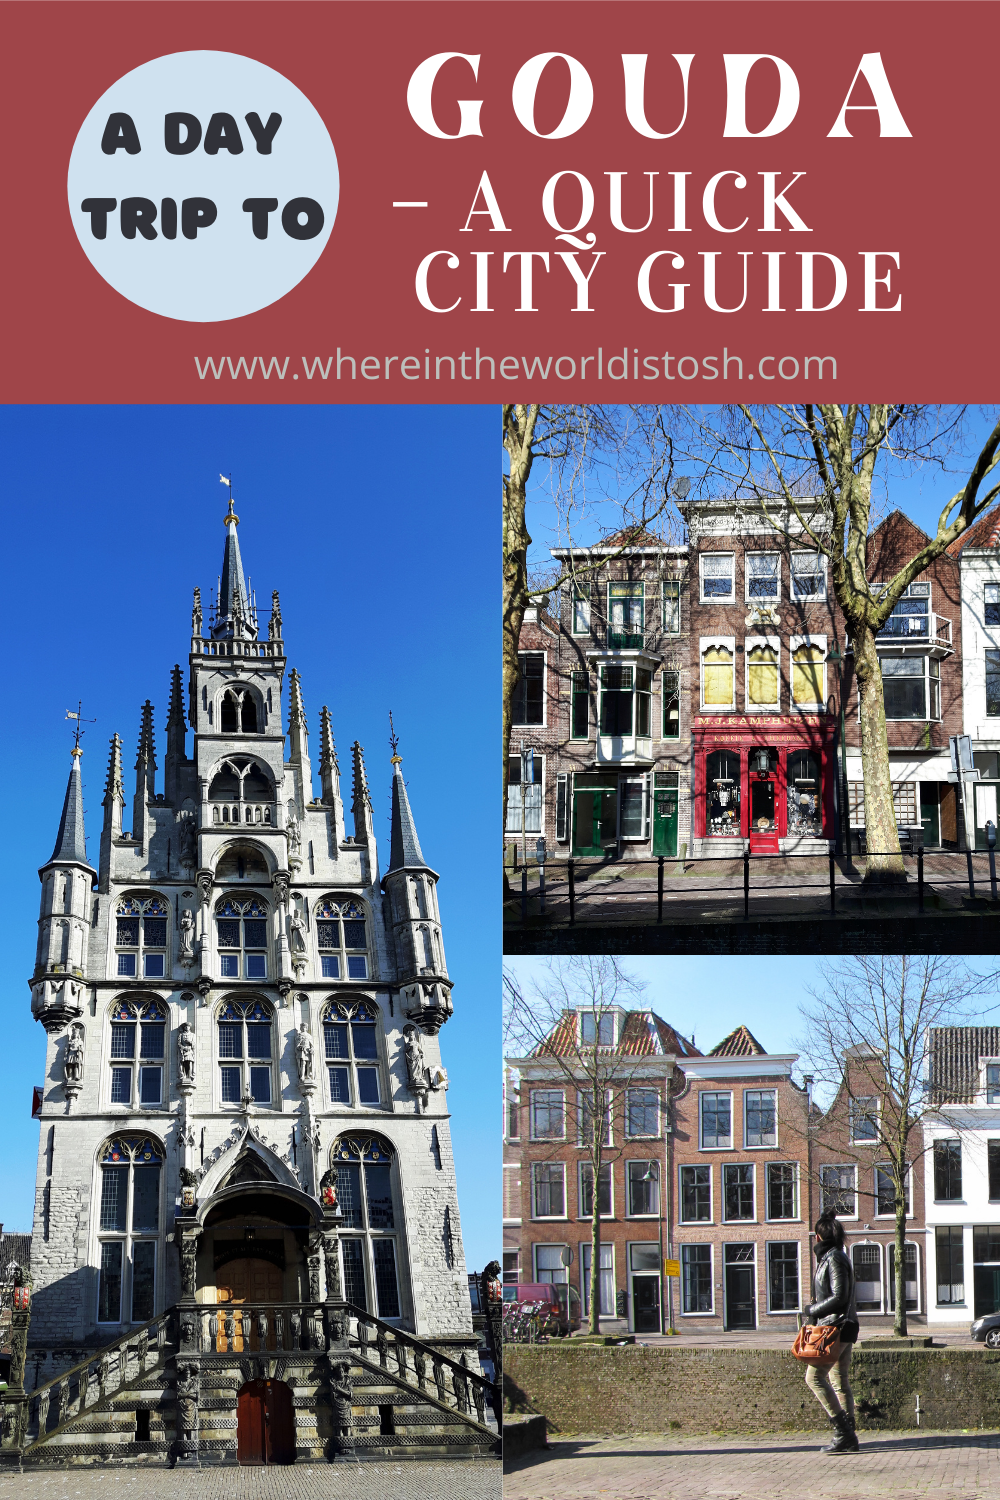 City Guide To Gouda